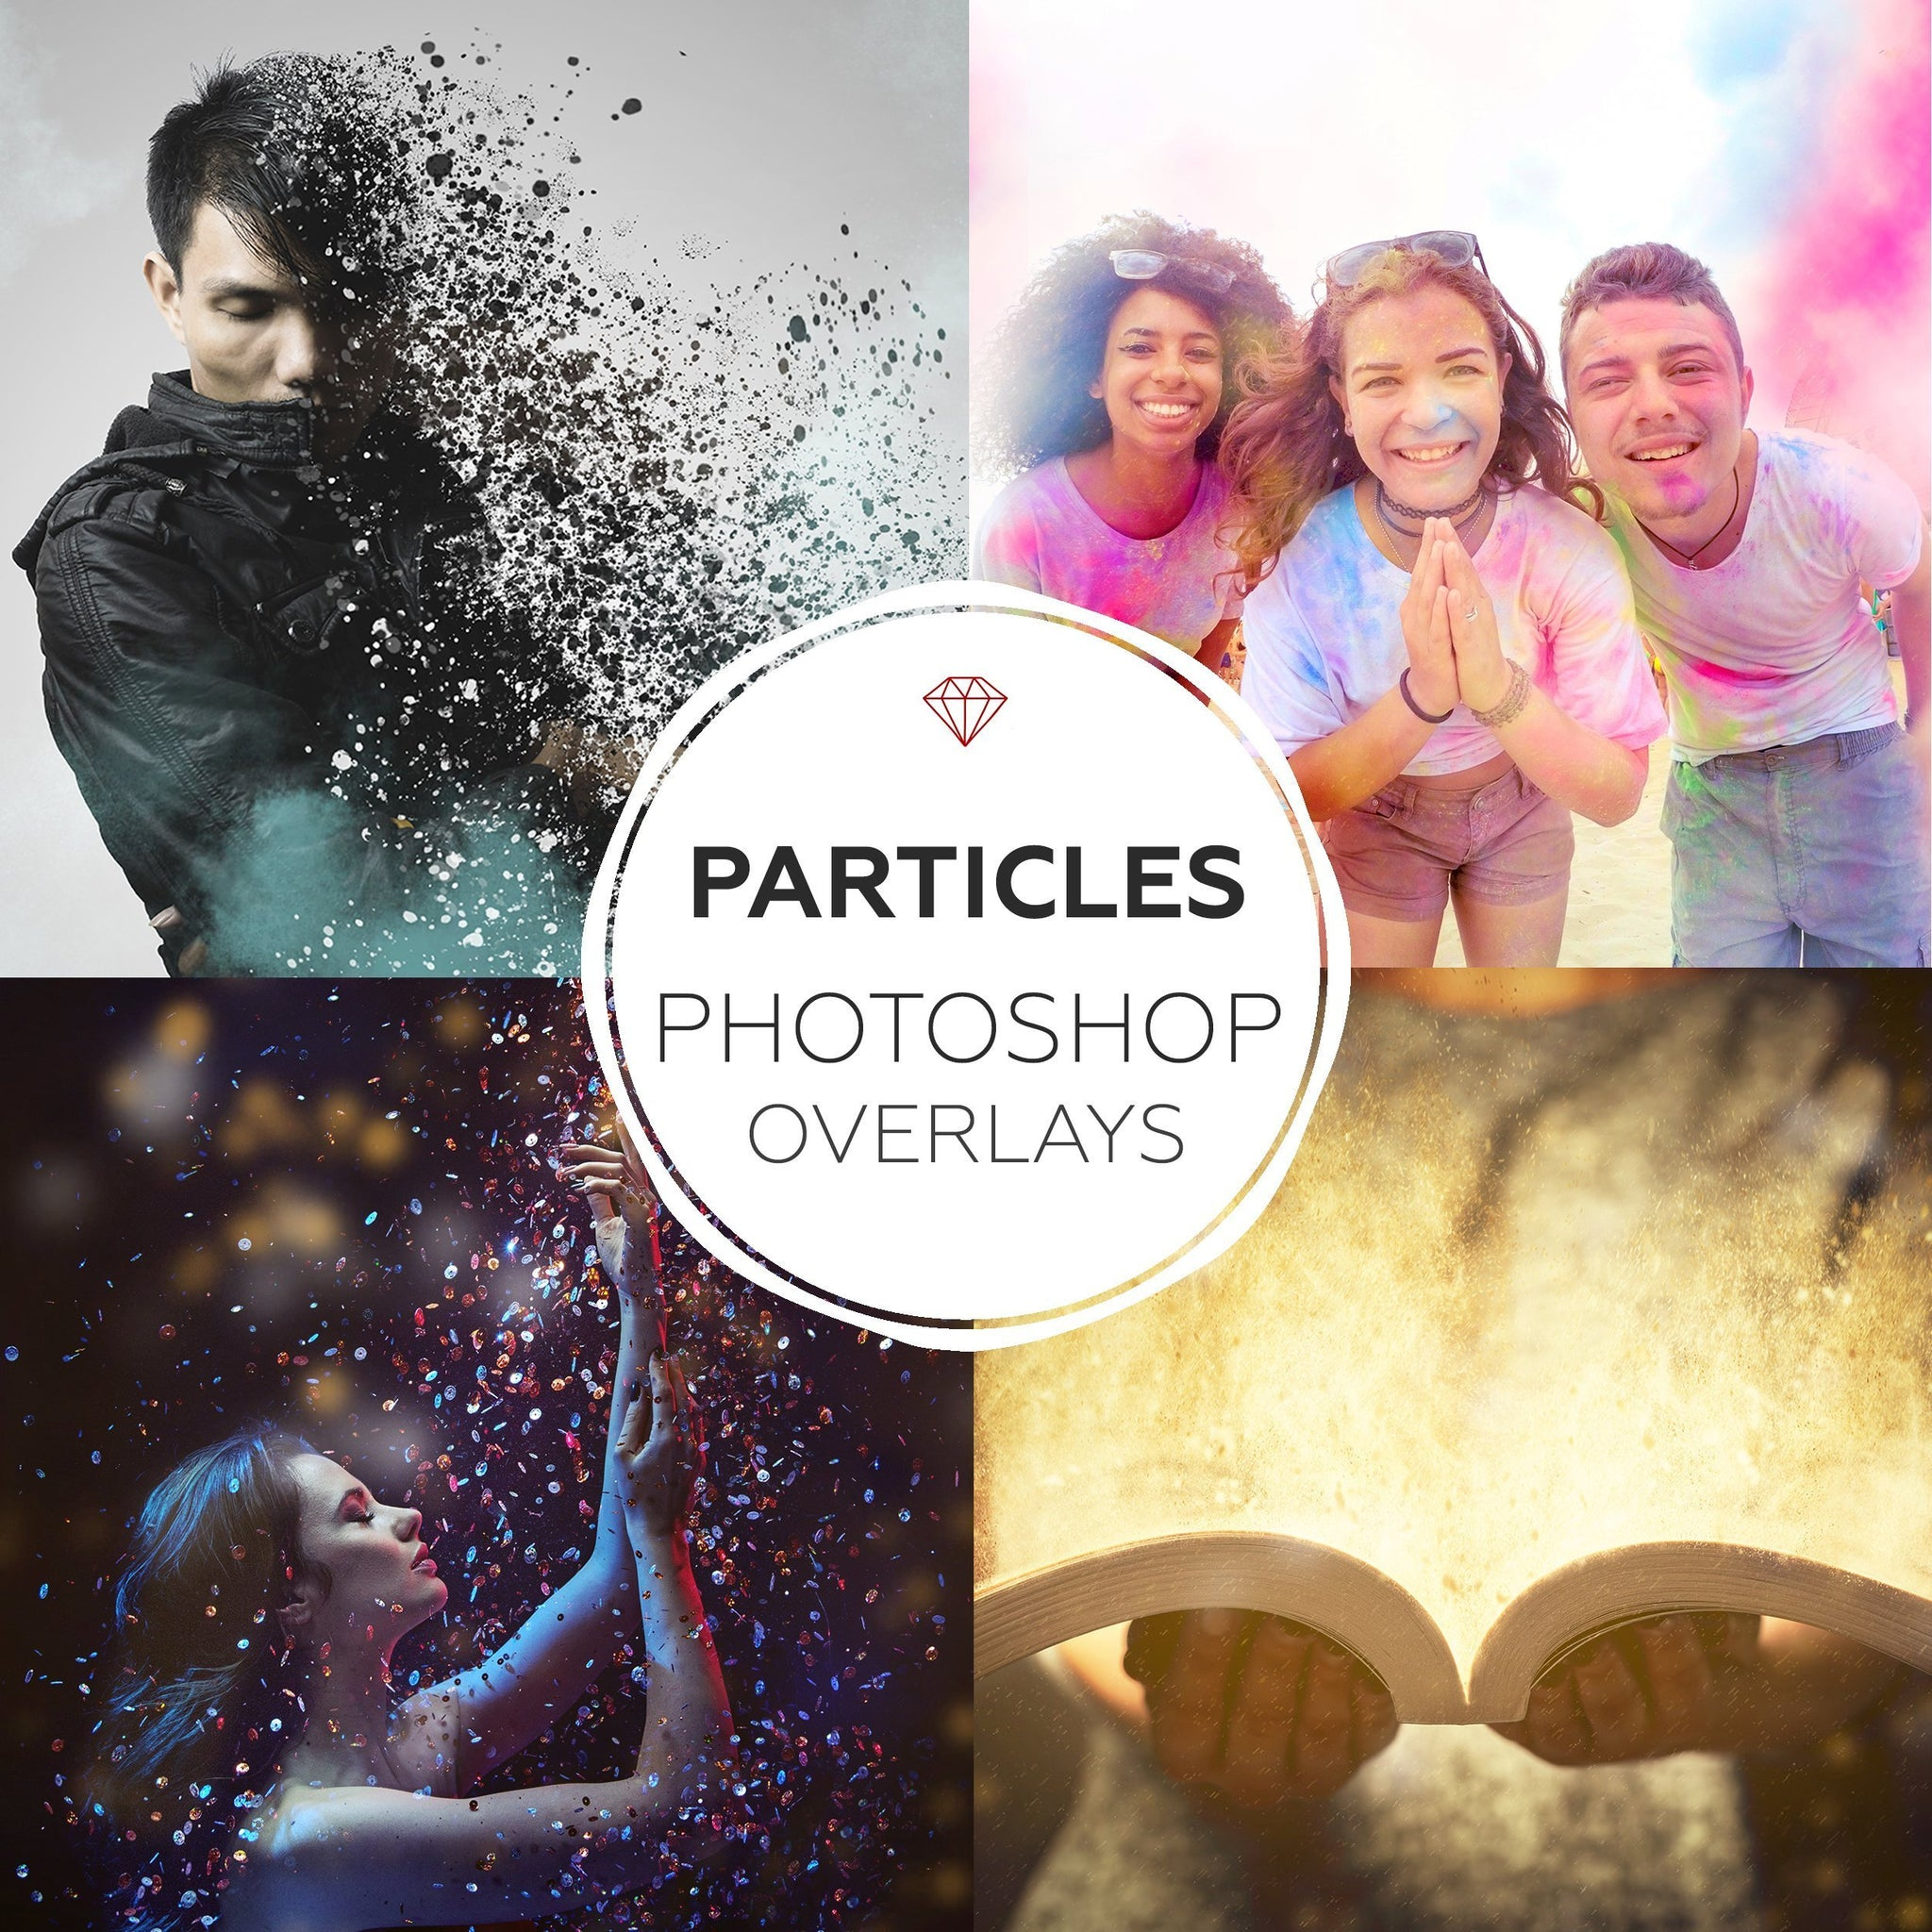 Particles - Overlays